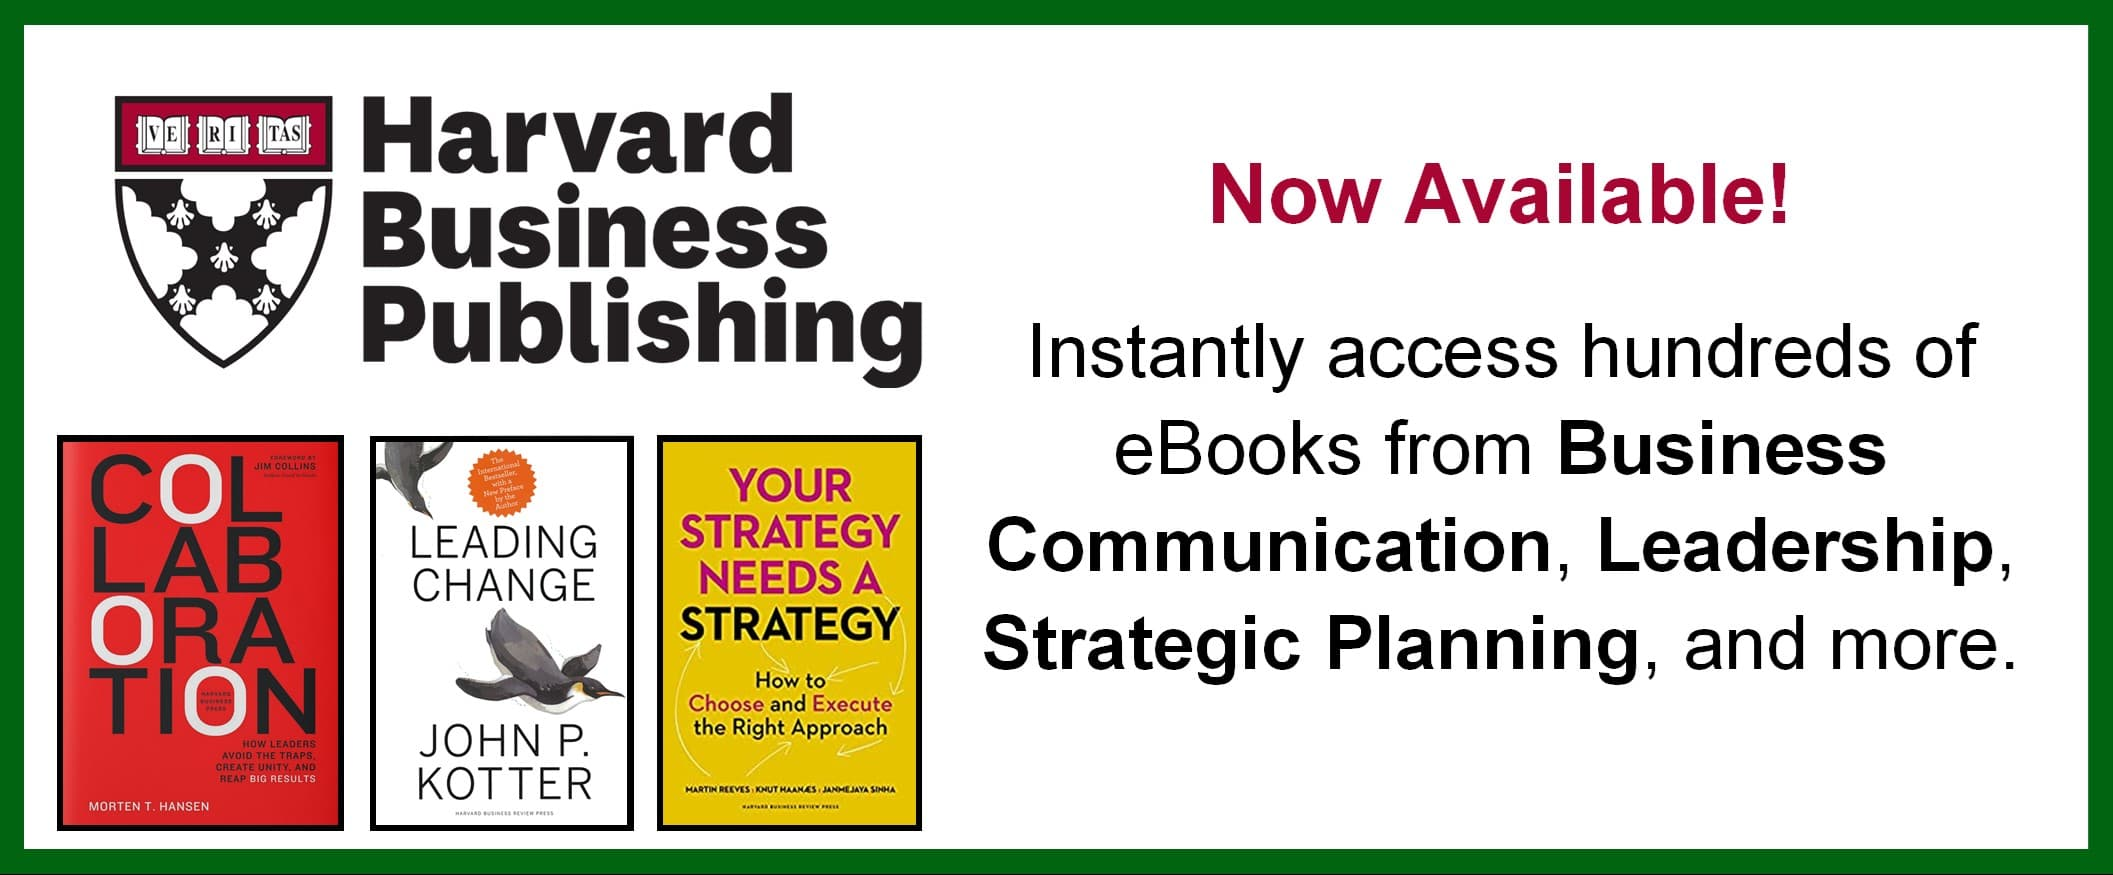 Now Available! Harvad Business Publishing Instantly access hundred of eBooks from Business Communication, Leadership, Strategic Planning, and more.